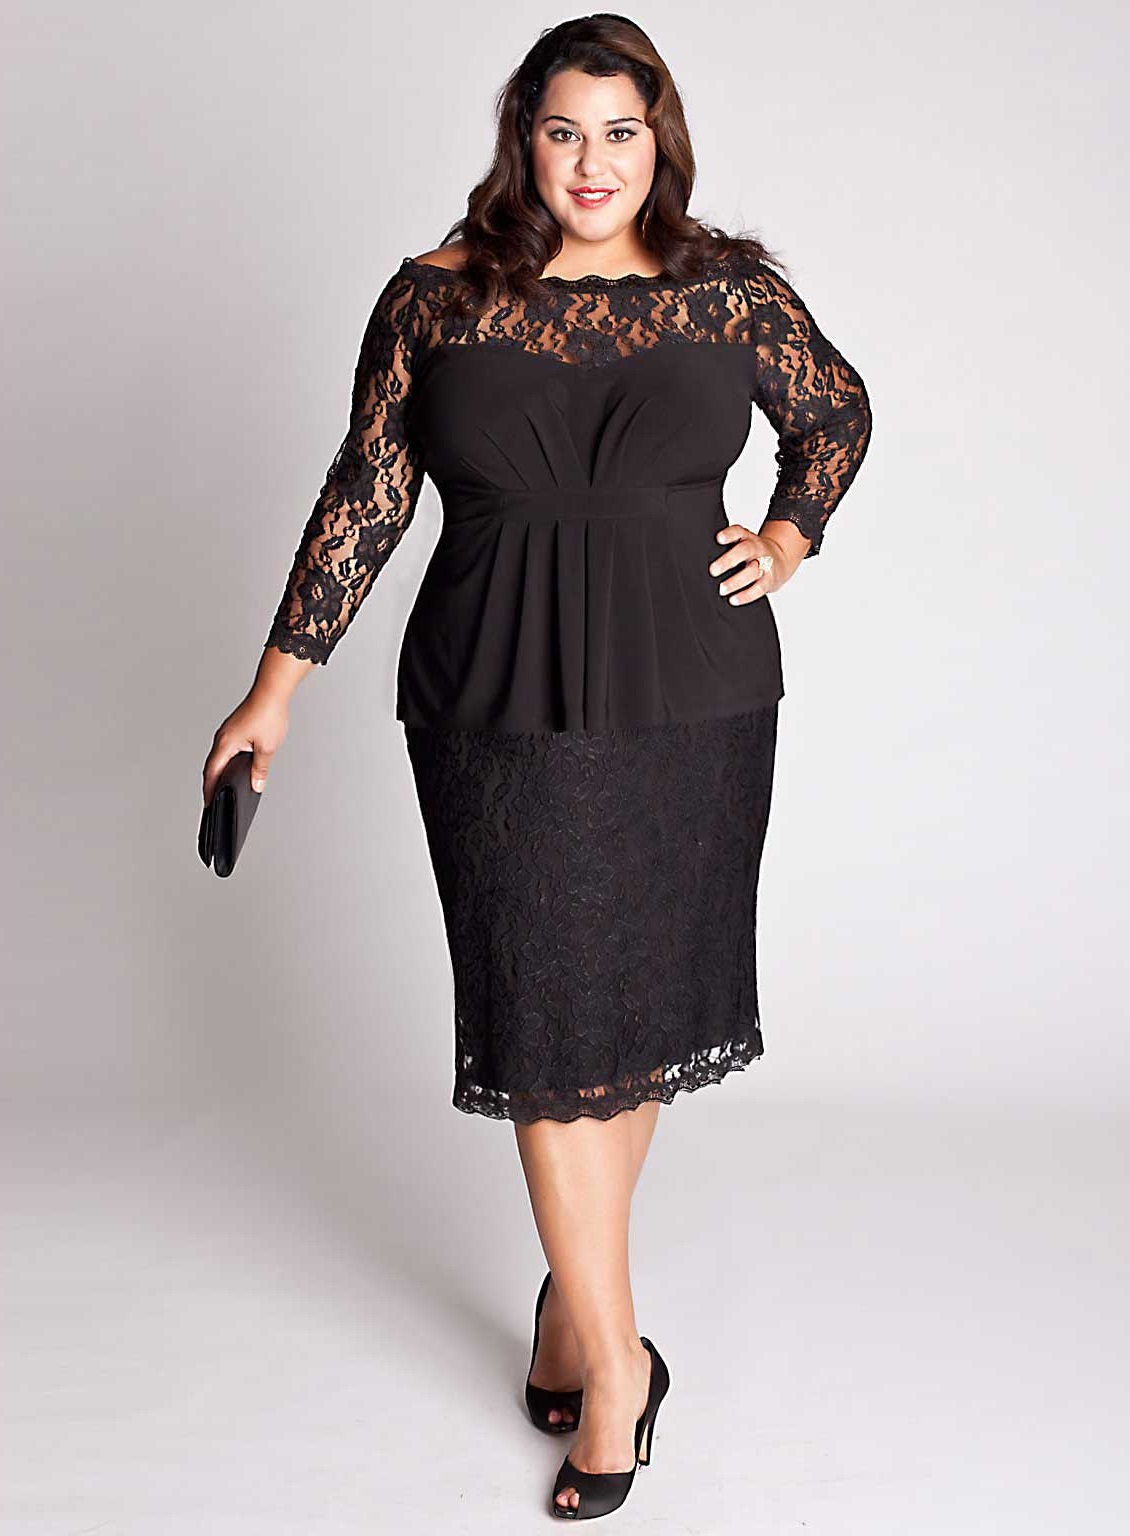 What are some plus size dressy outfit ideas?. Find a wonderful selection of dressy plus size clothes for women. Find a wonderful selection of dressy plus size clothes for women. Start a special evening out by slipping into a gorgeous cocktail dress from City Chic or an evening gown from Adrianna Papell a formal occasion like a wedding.